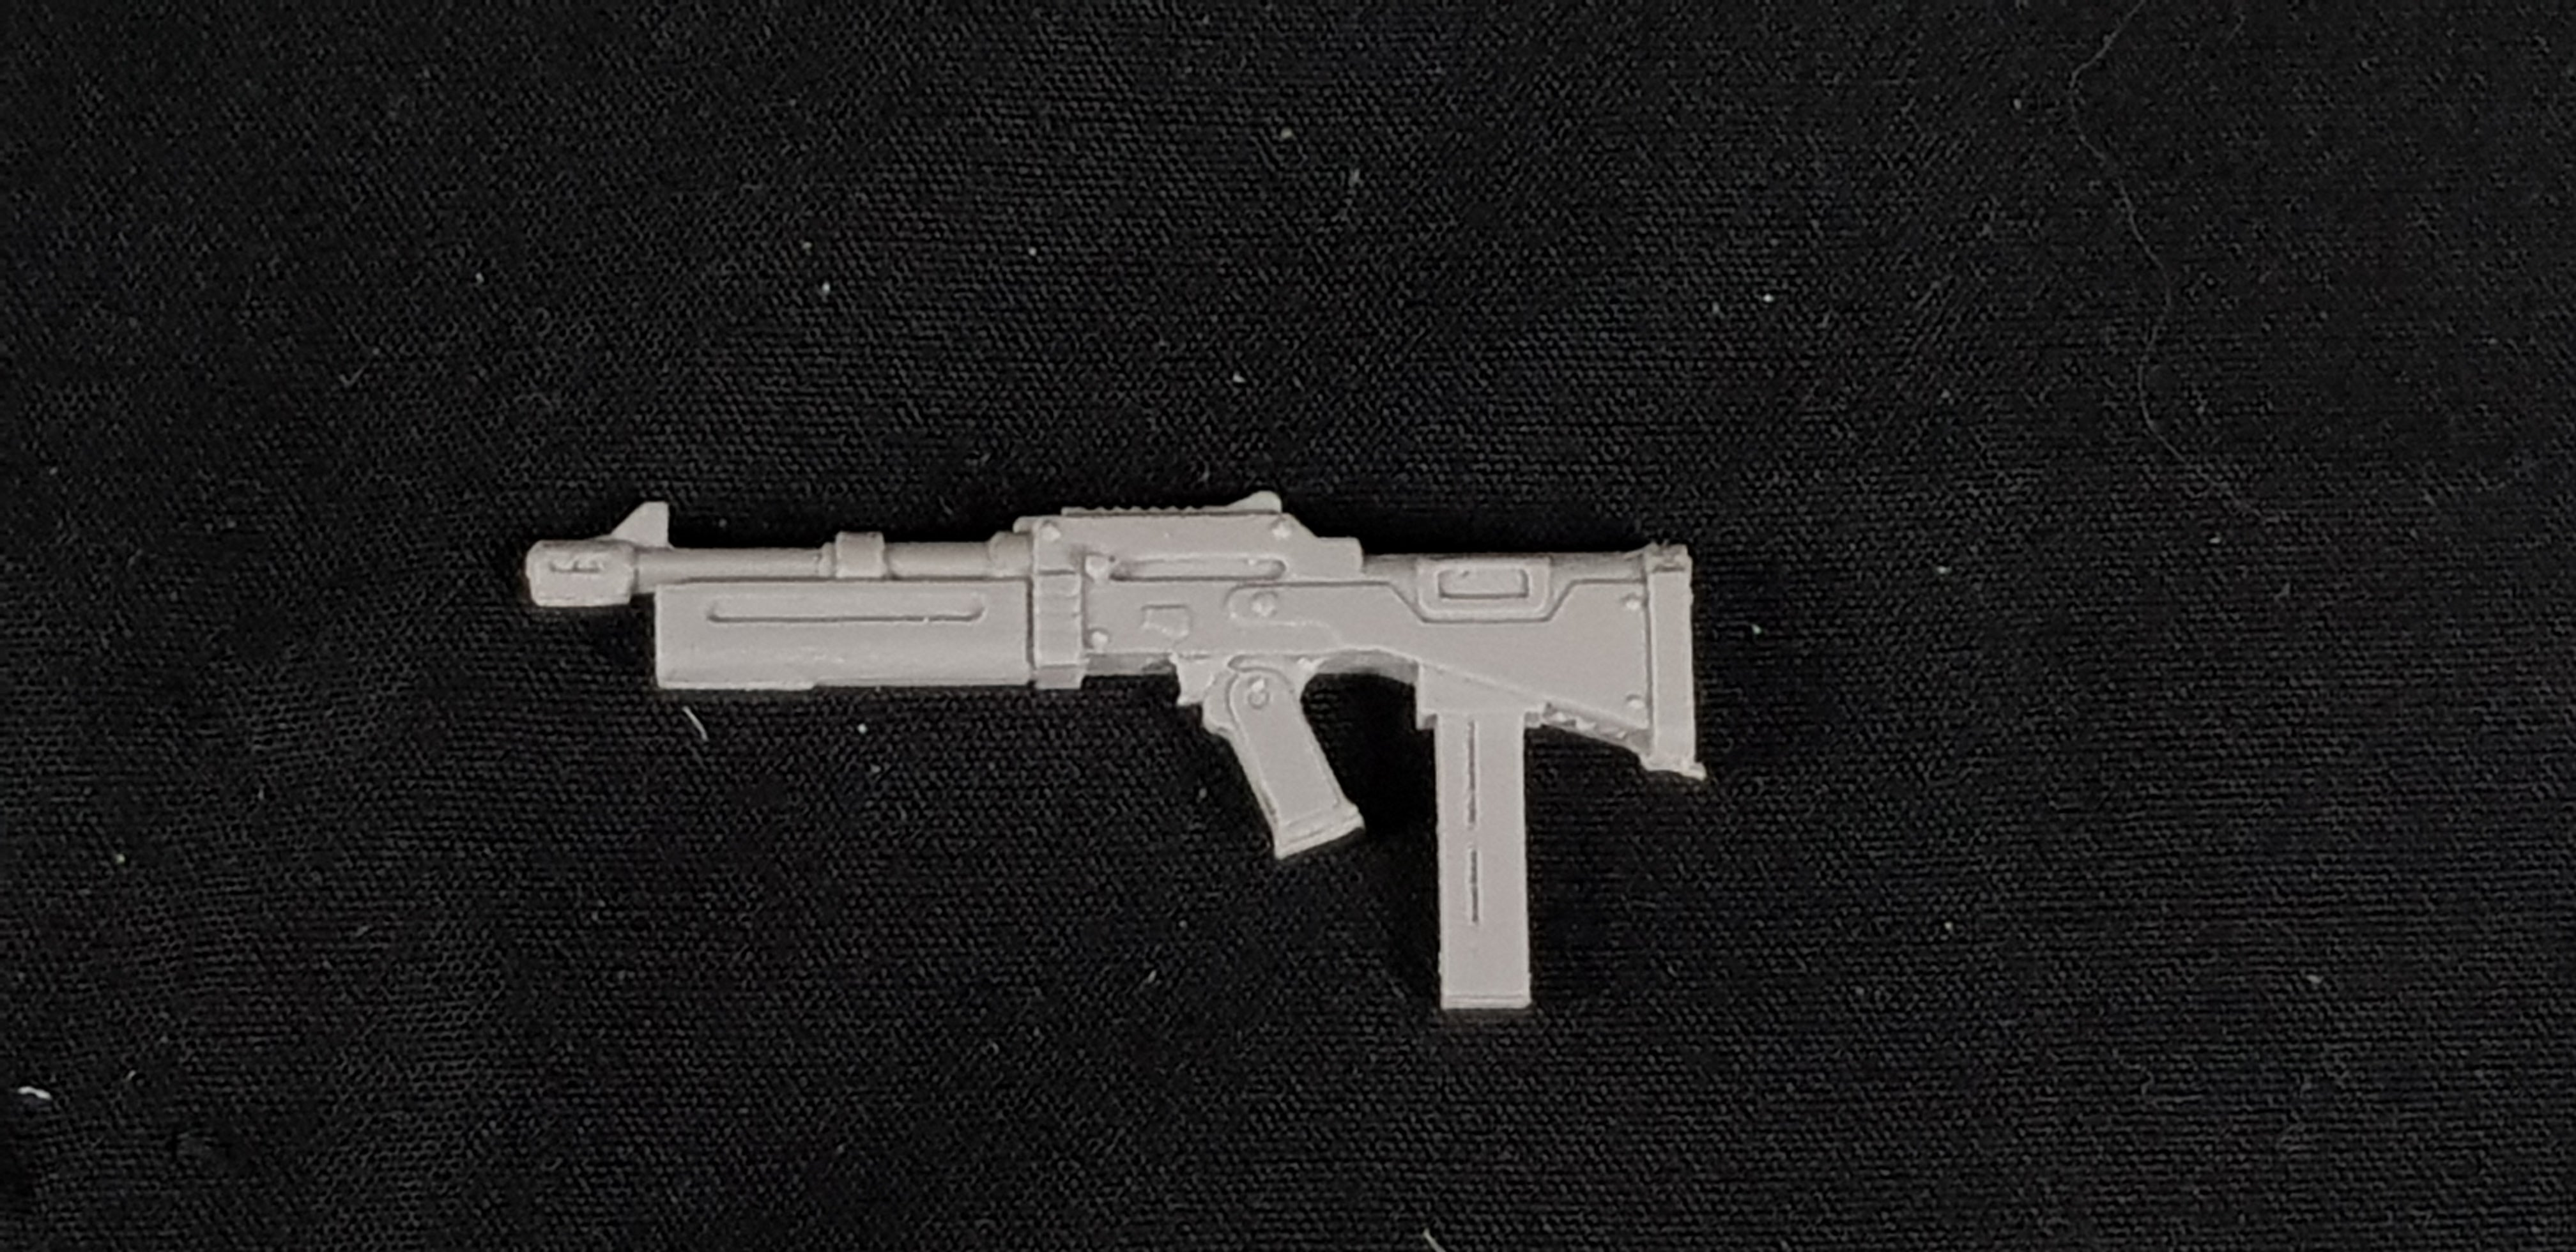 1/24 scale 'KILLROY' Sub-machine gun